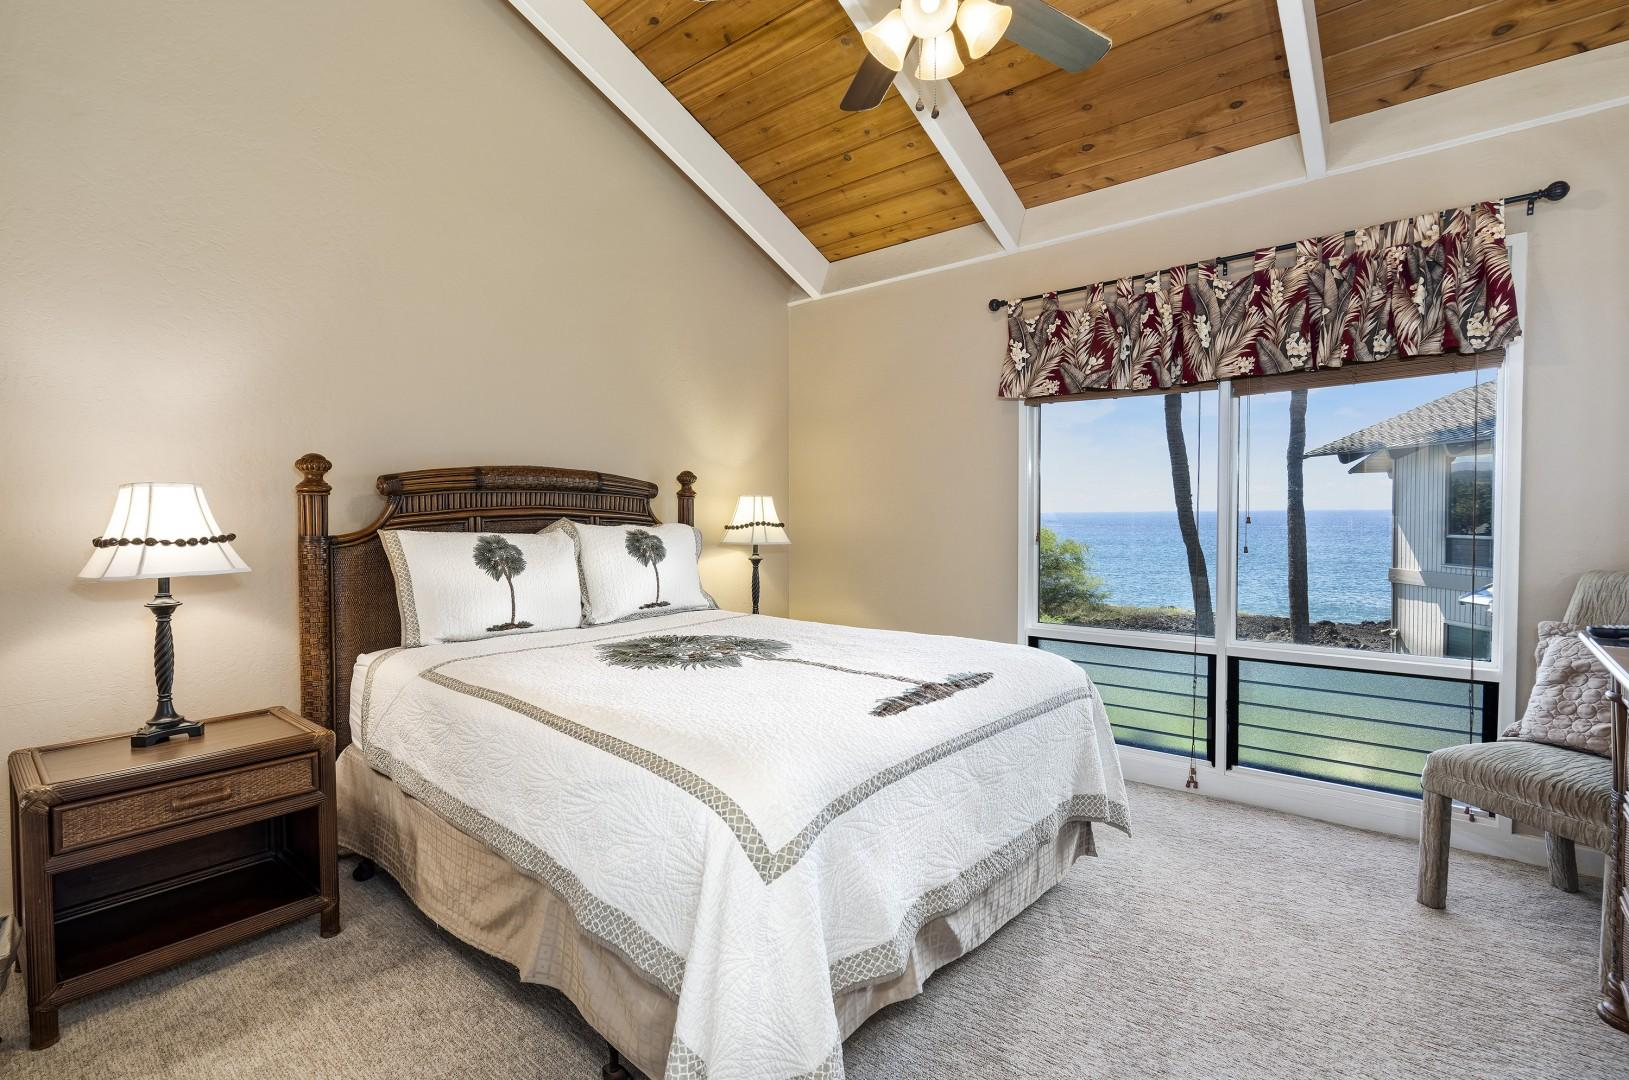 Guest bedroom with stellar ocean views! Queen bed, TV, and A/C